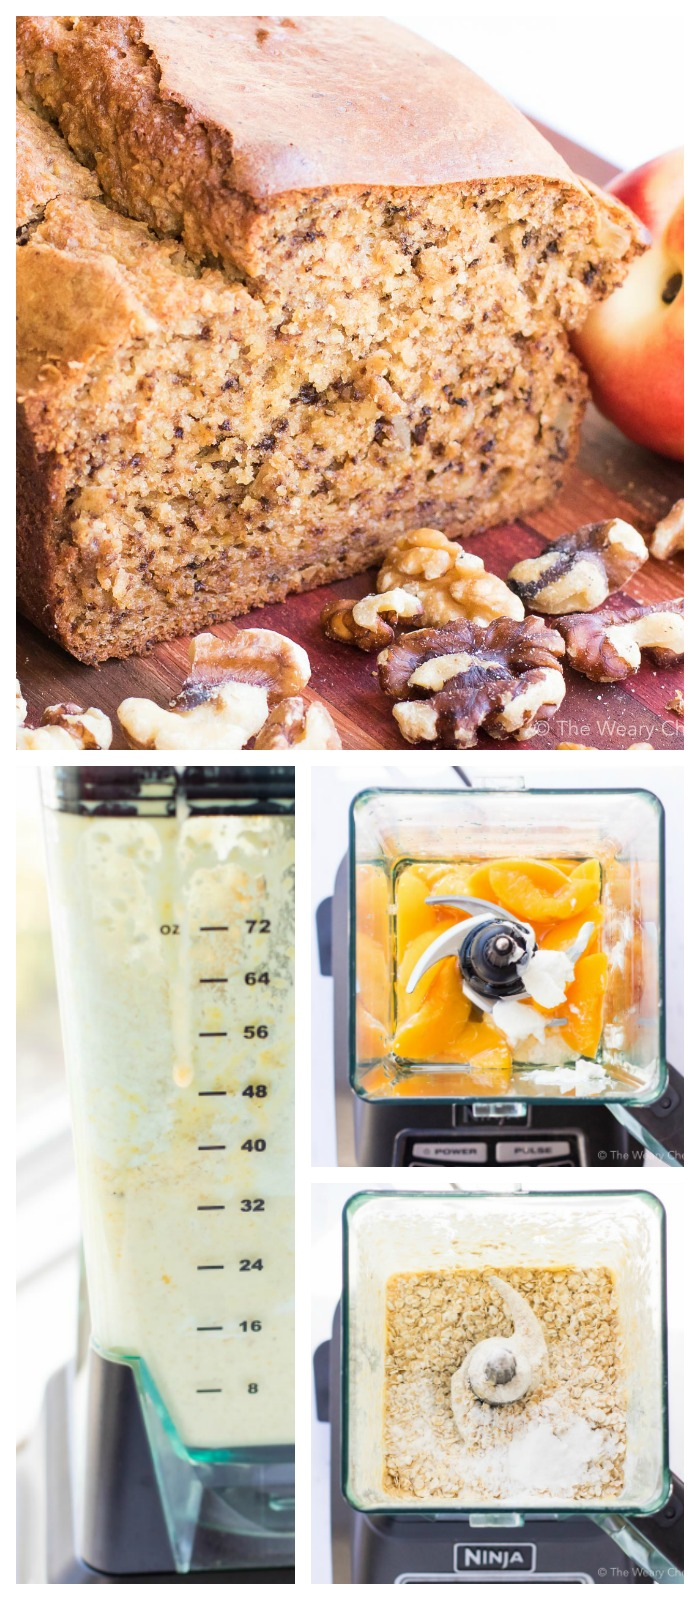 You can make peach bread with your blender!